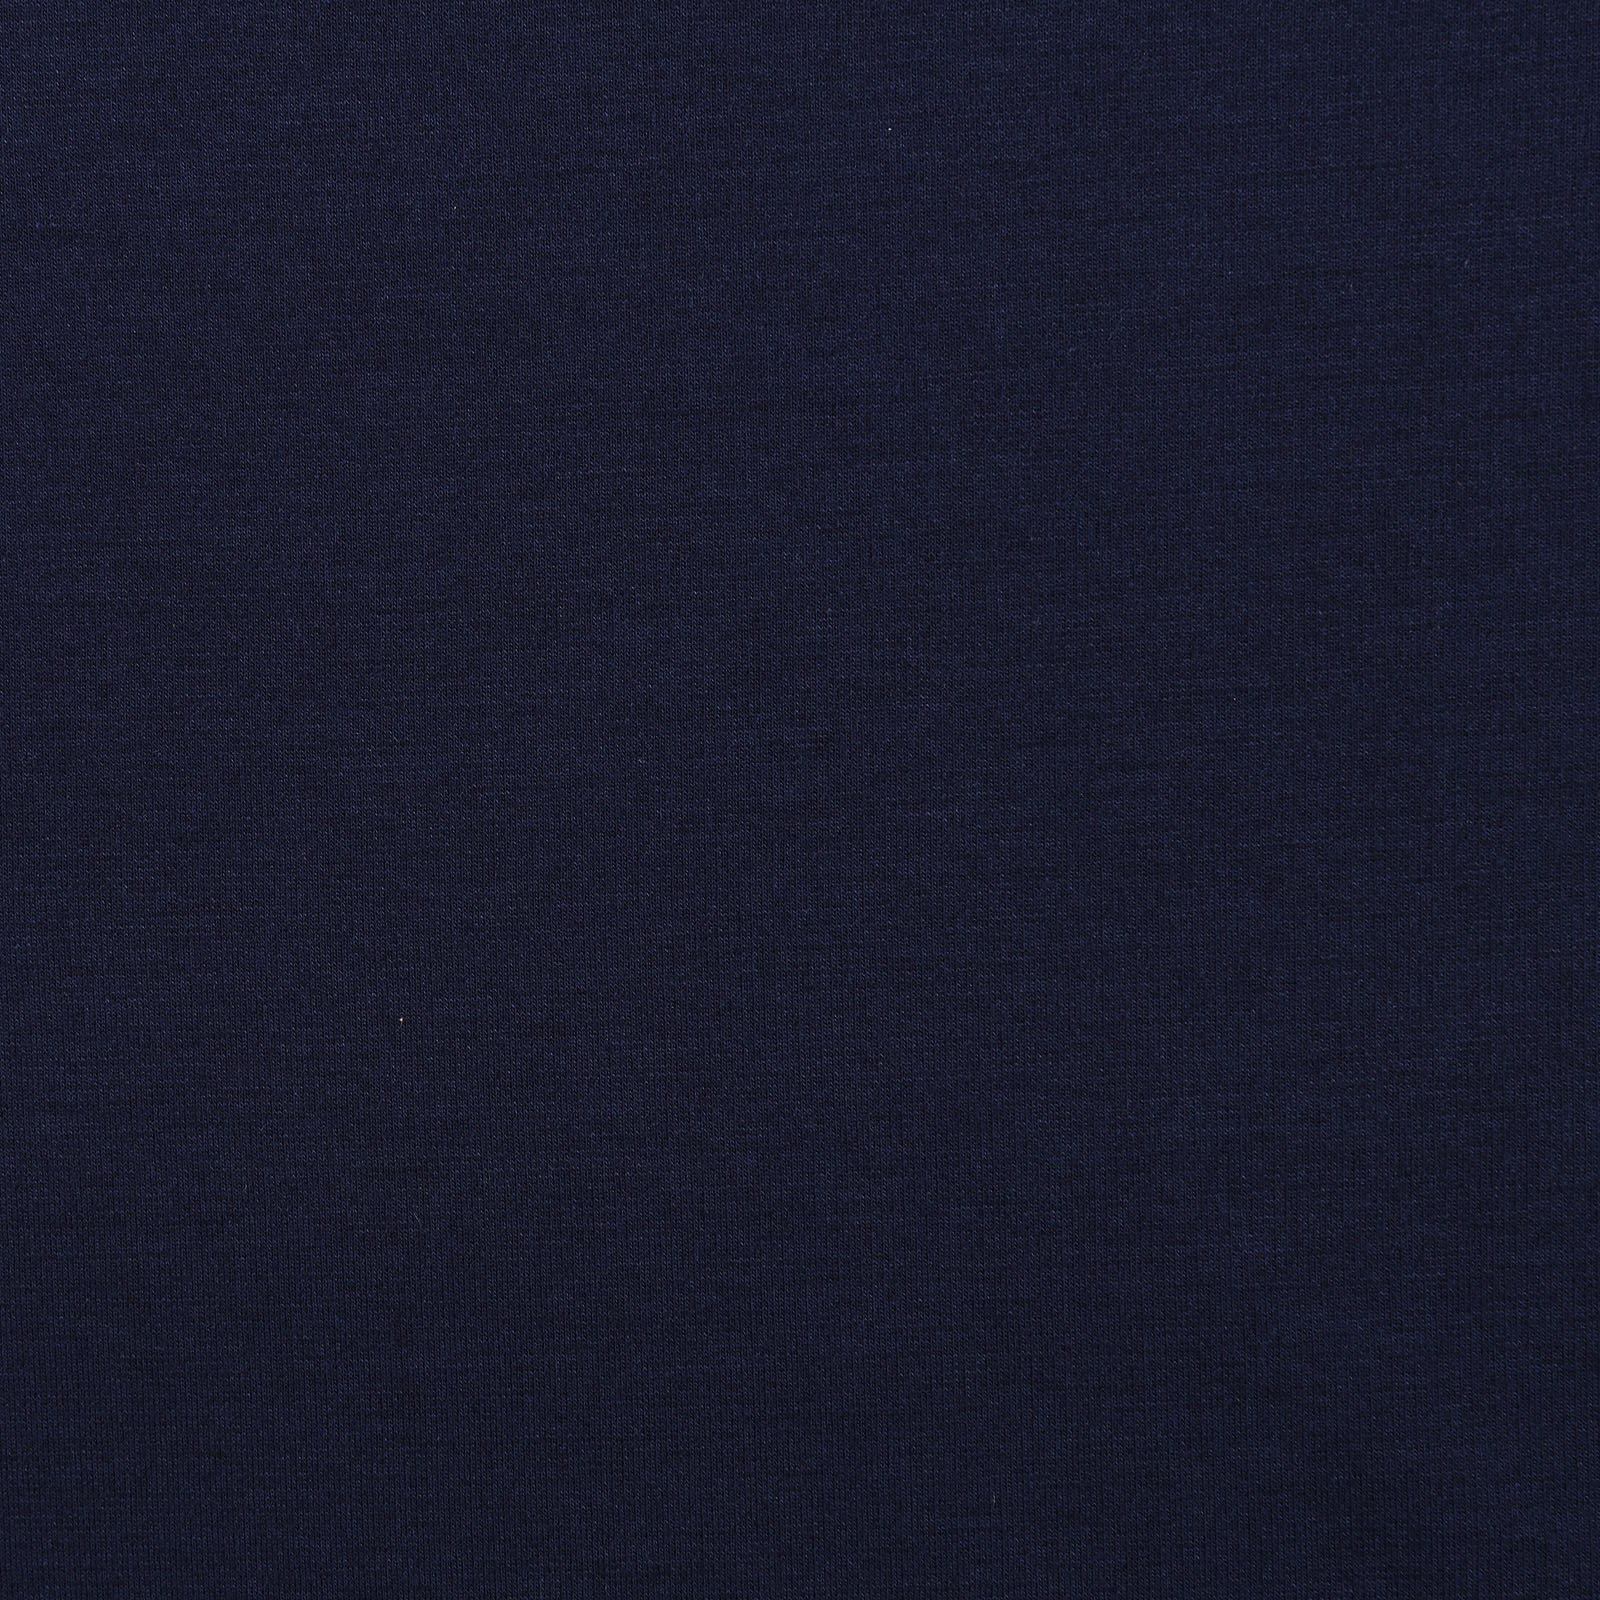 Dress jersey dark blue bloomsbury square dressmaking fabric for Dressmaking fabric